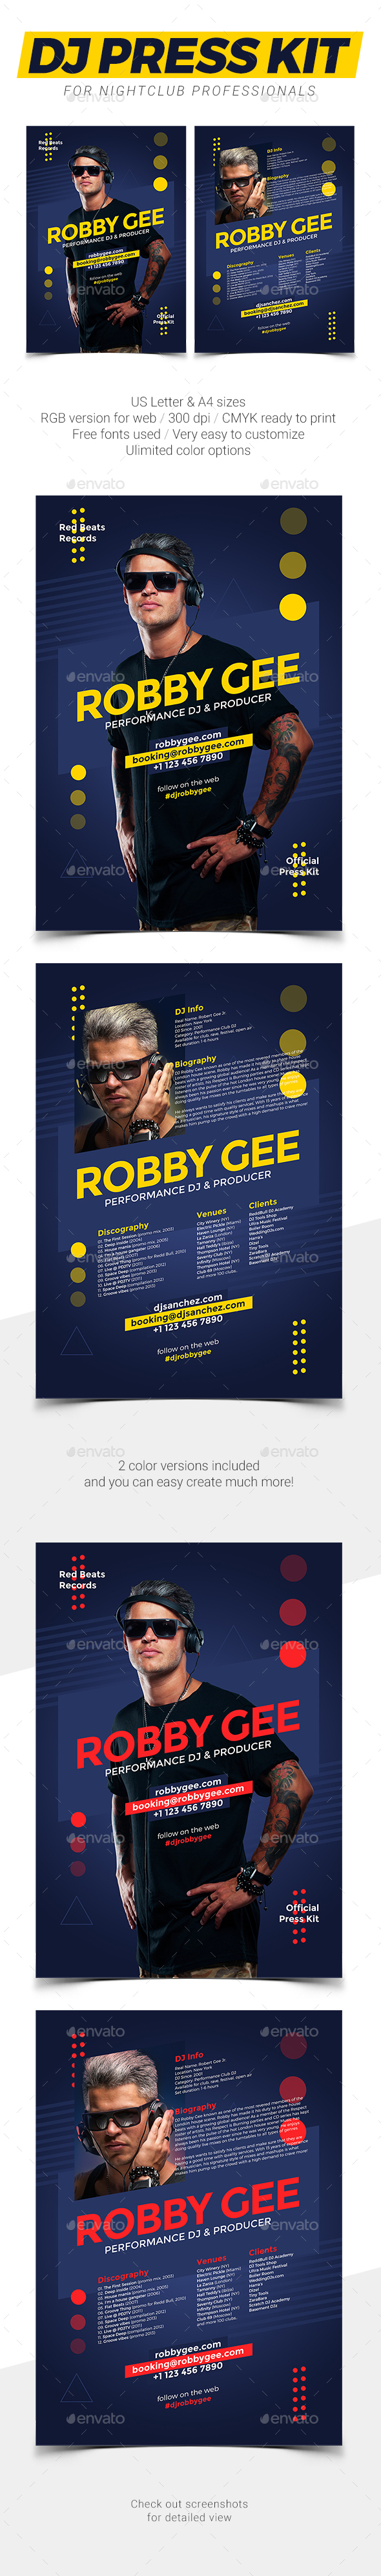 Prodj Dj Press Kit Dj Resume Psd Template By Vinyljunkie